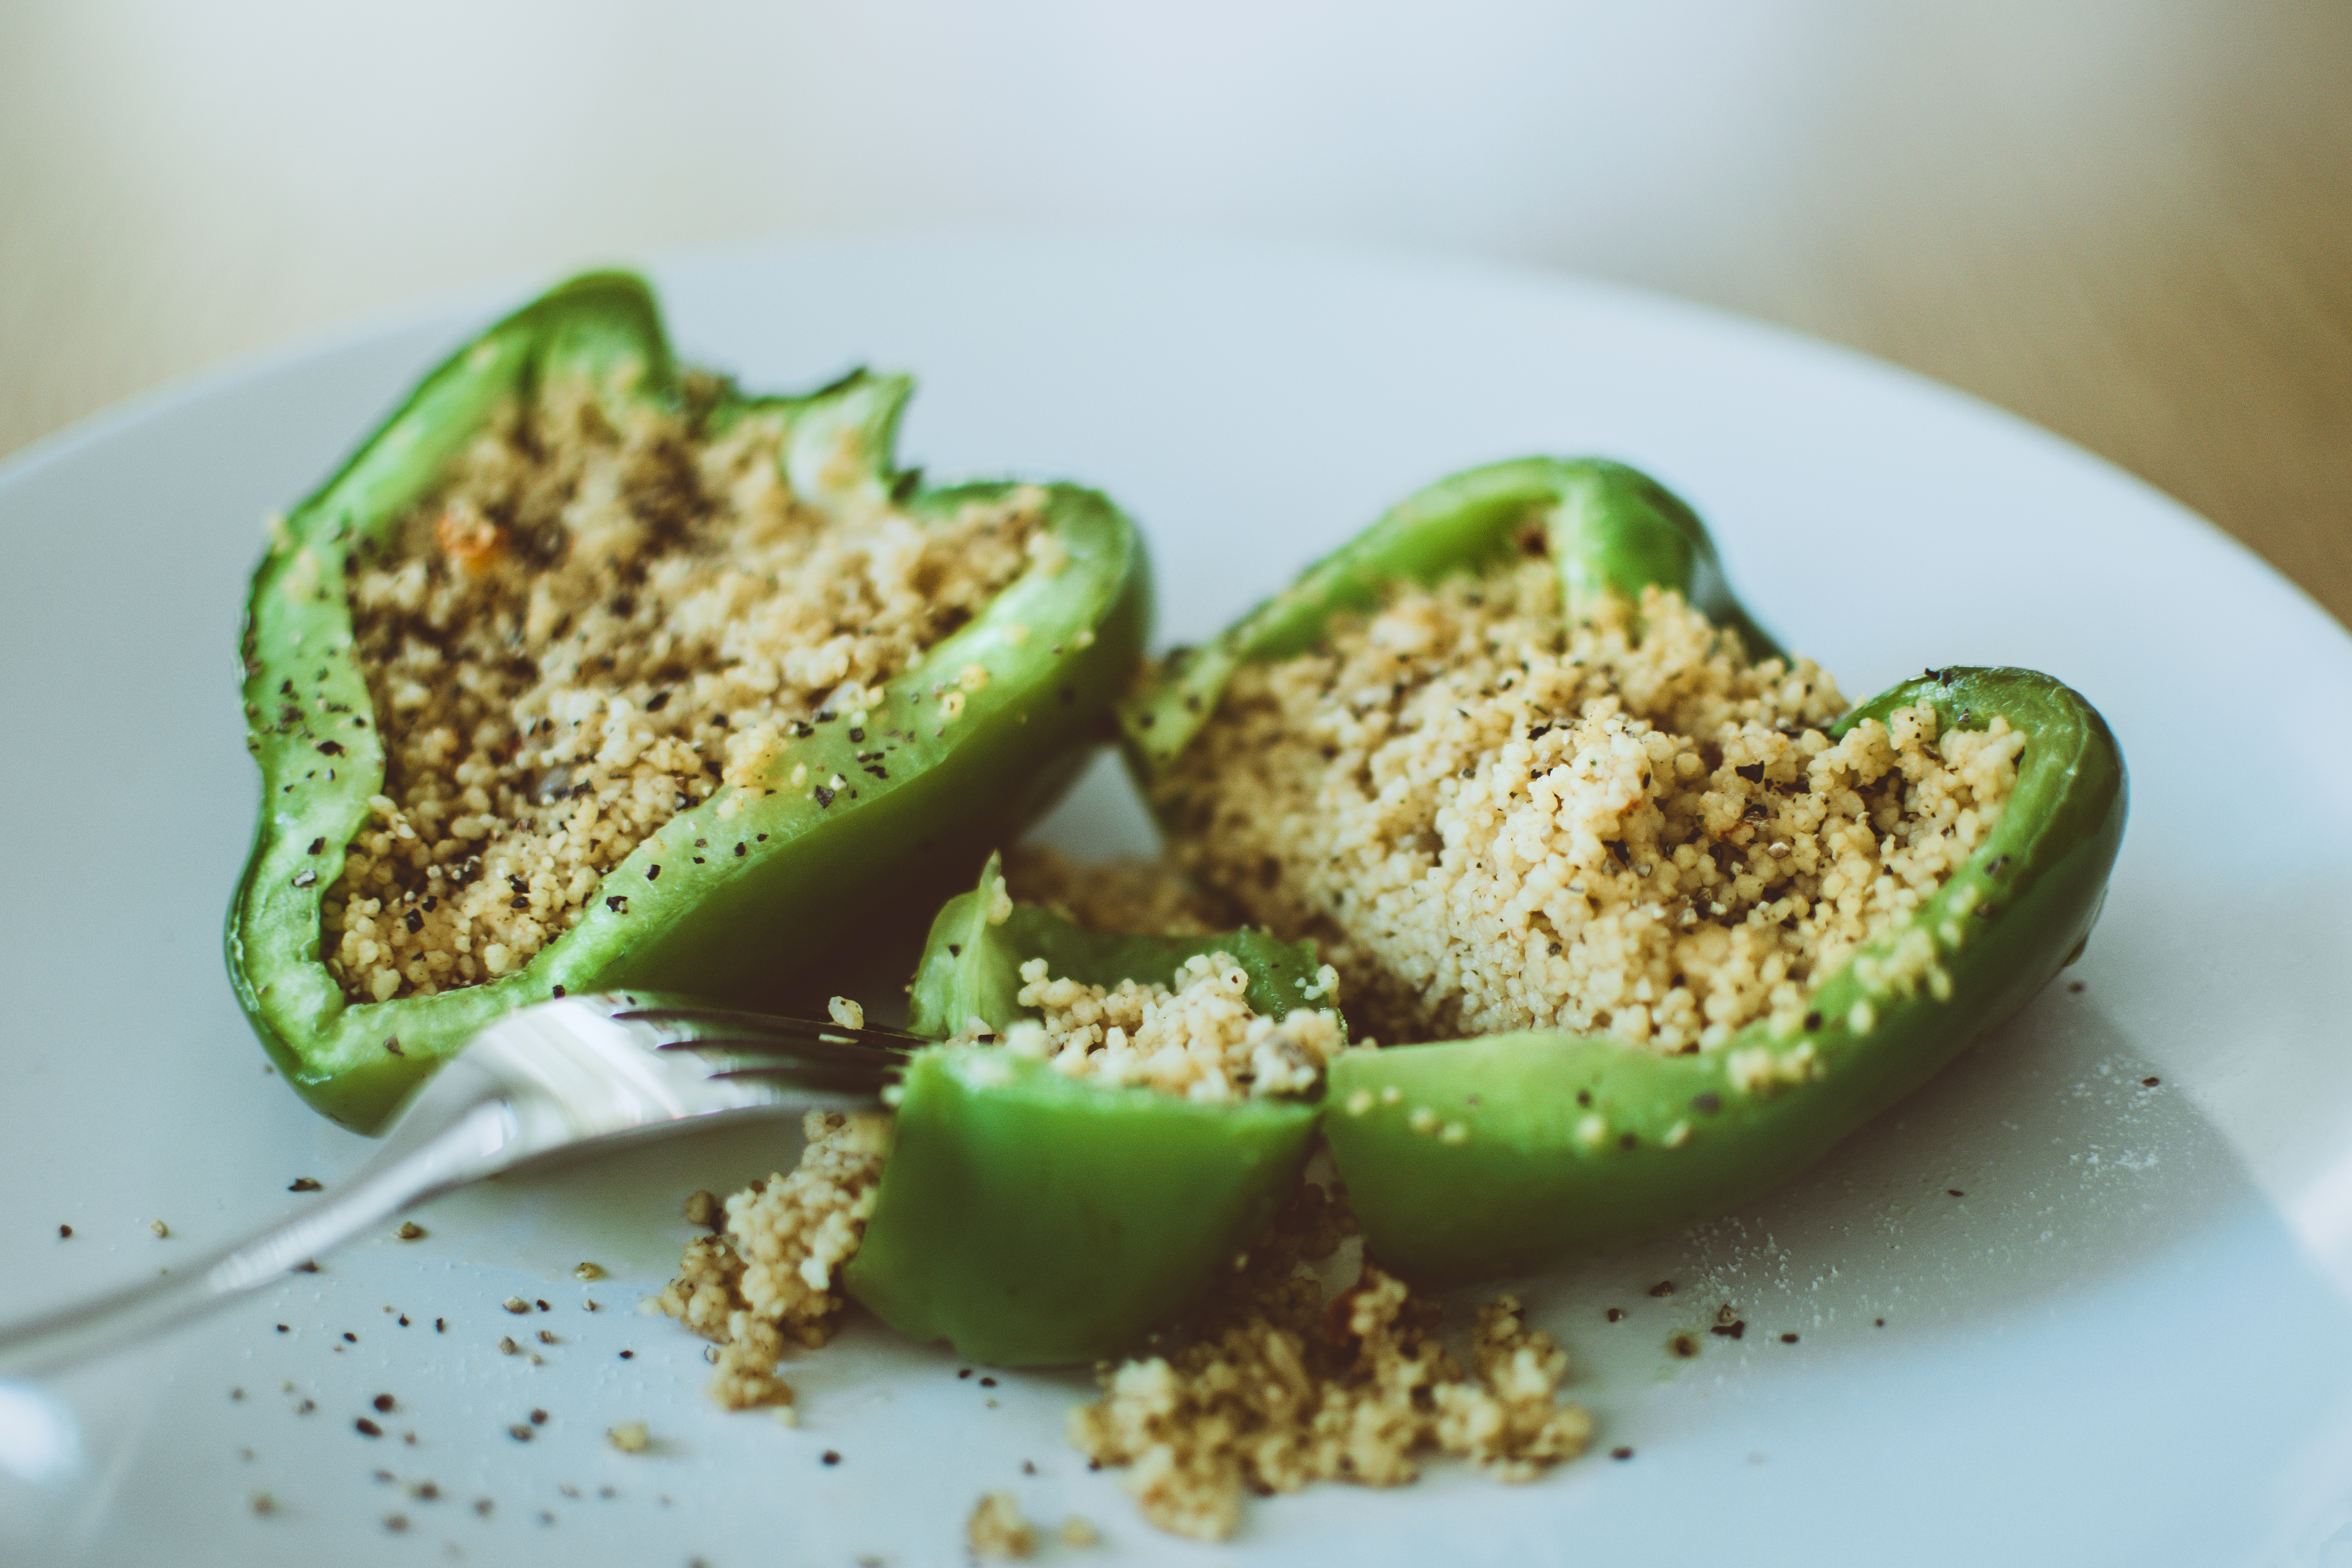 Green Bell Pepper Stuffed With Couscous